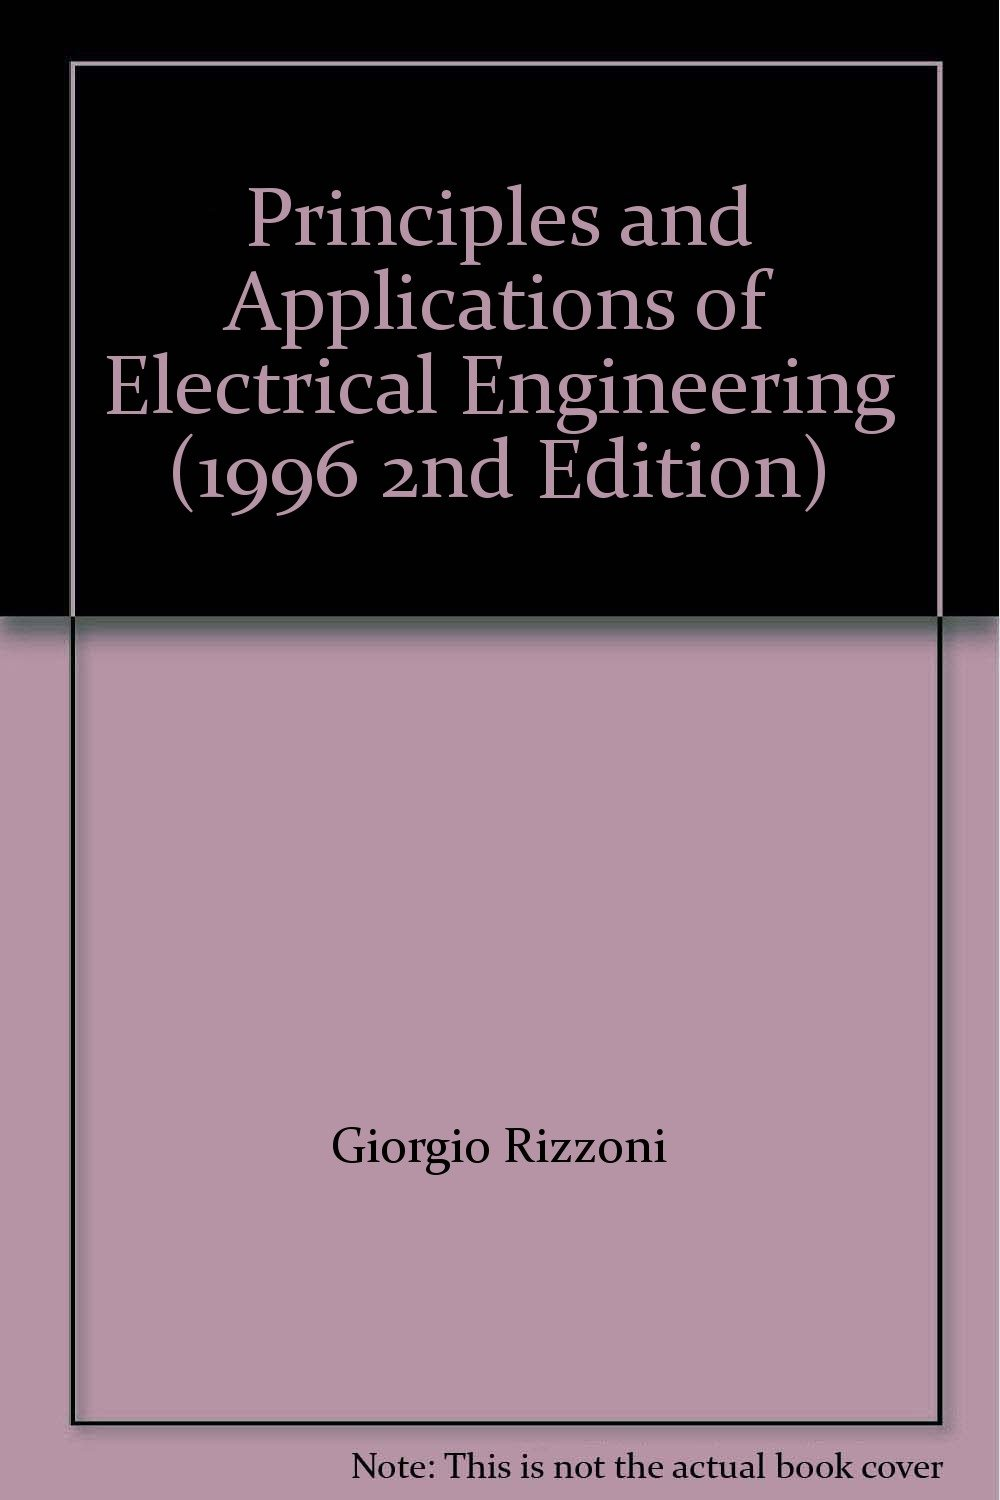 Principles and Applications of Electrical Engineering (1996 2nd Edition): G  Rizzoni: Amazon.com: Books